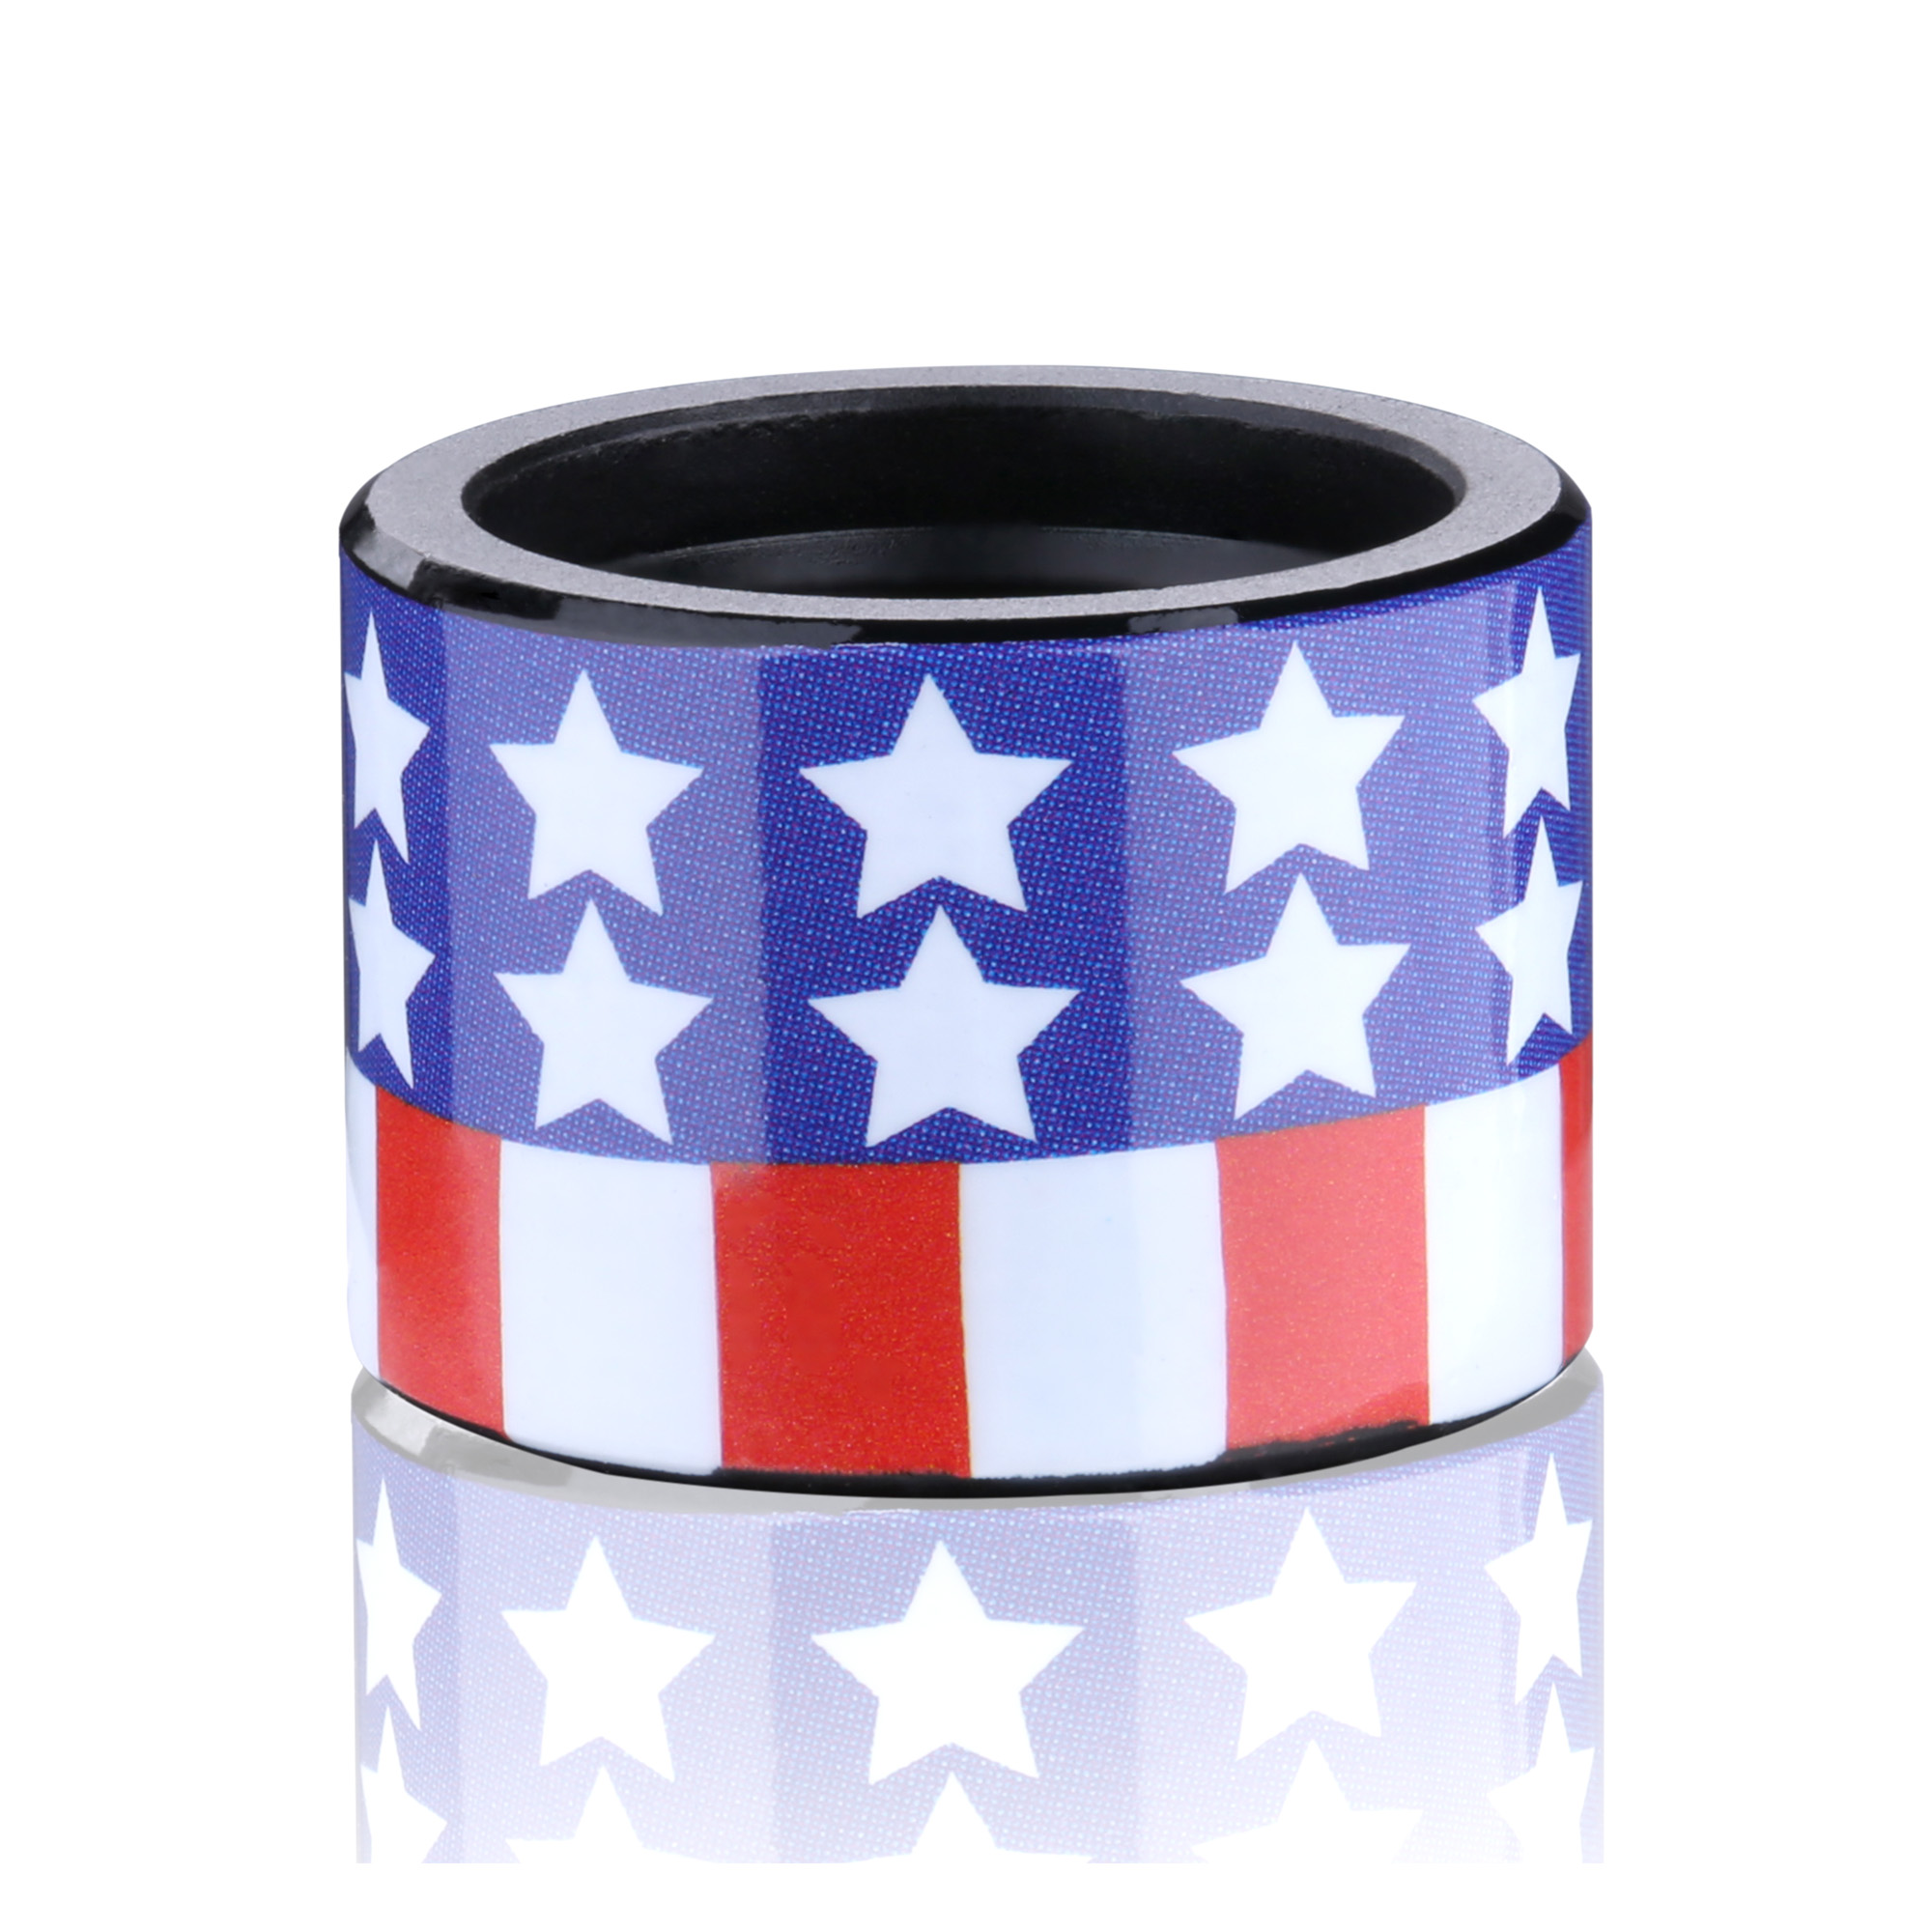 Custom thread protector with flag pattern on it.